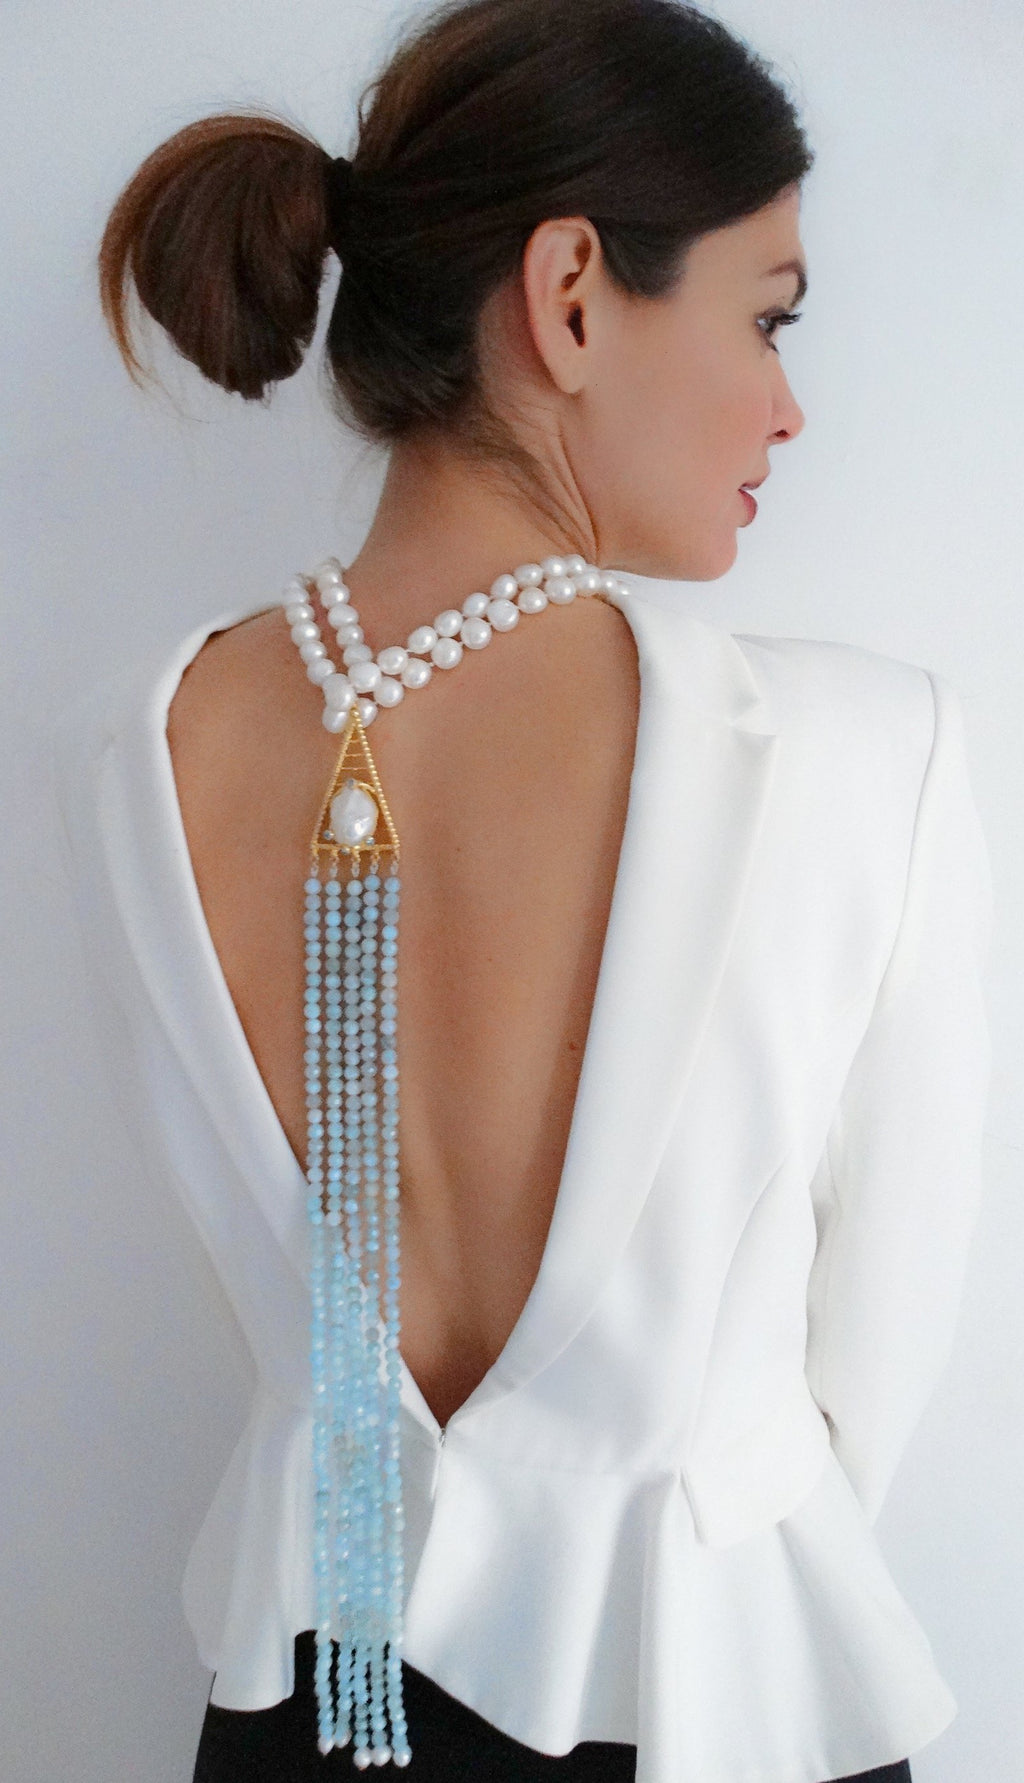 Re-establish the link between the nature and elegance with this complex yet stylish necklace ideal for sensual summer nights accompanied even with the simple white dress. Features aquamarine faceted beads, baroque and freshwater pearls, topaz  and gold plated silver ornament